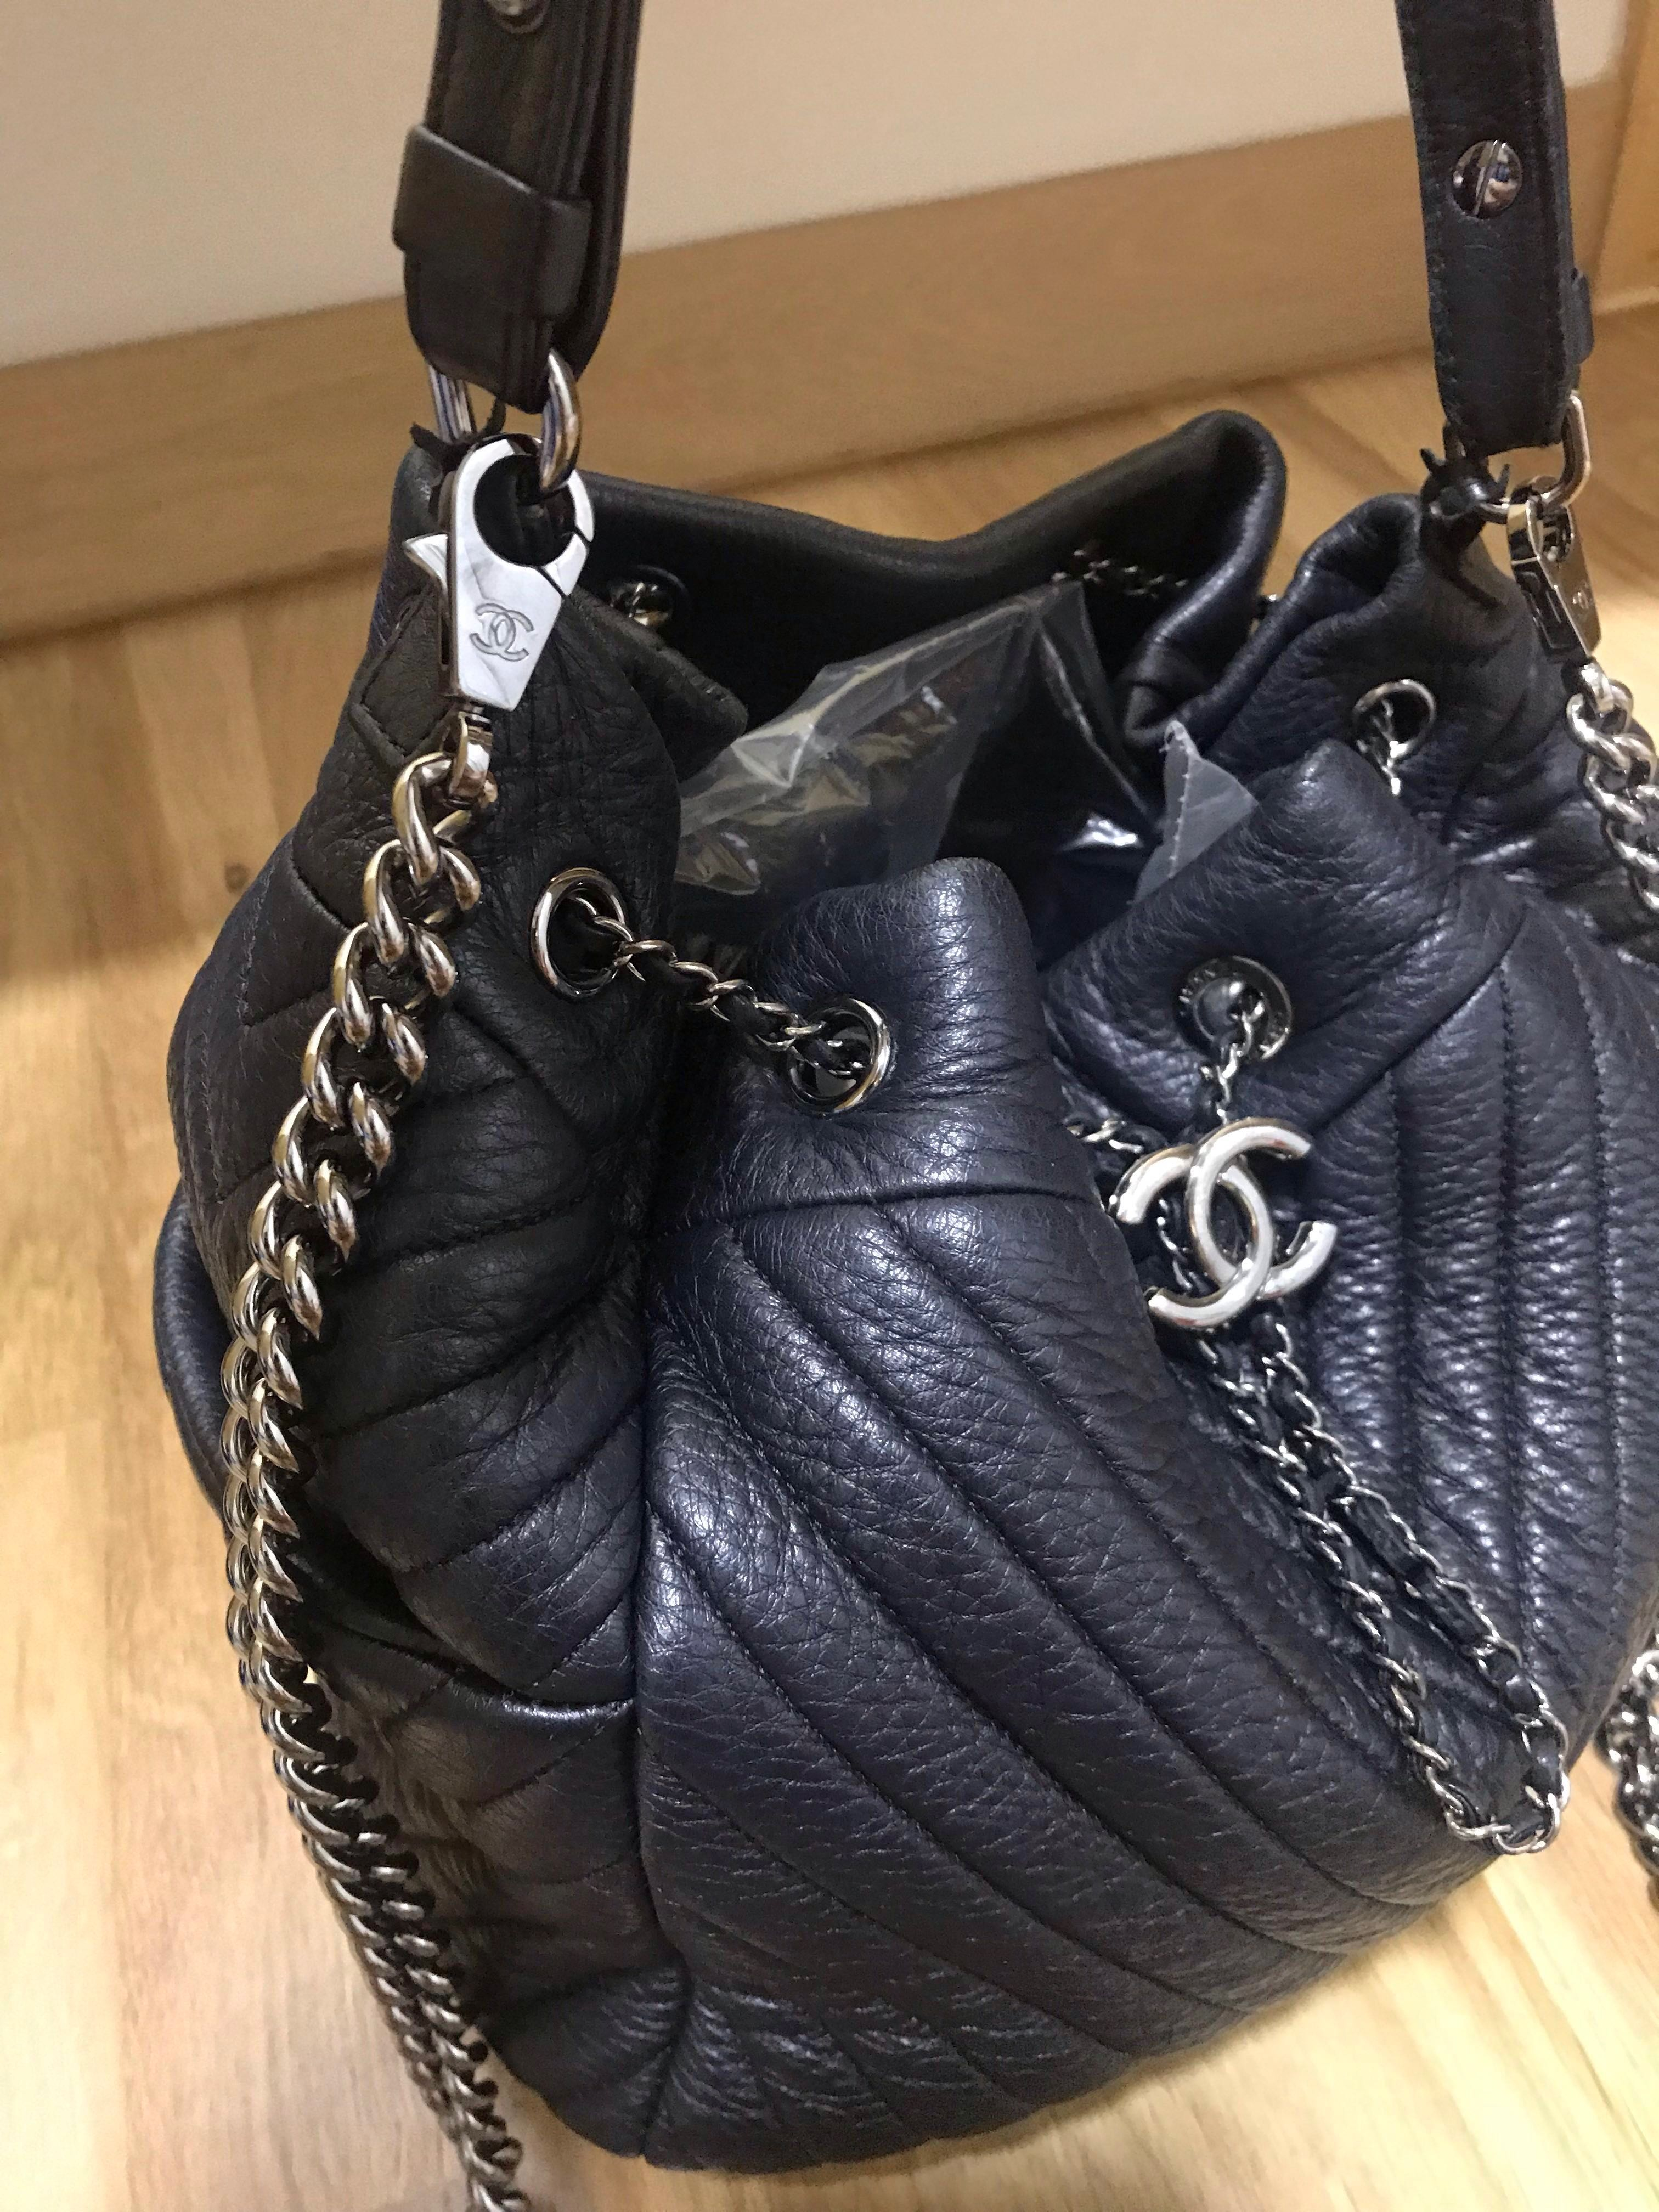 0d0410fb4f60 Chanel Bucket Bag, Luxury, Bags & Wallets, Handbags on Carousell